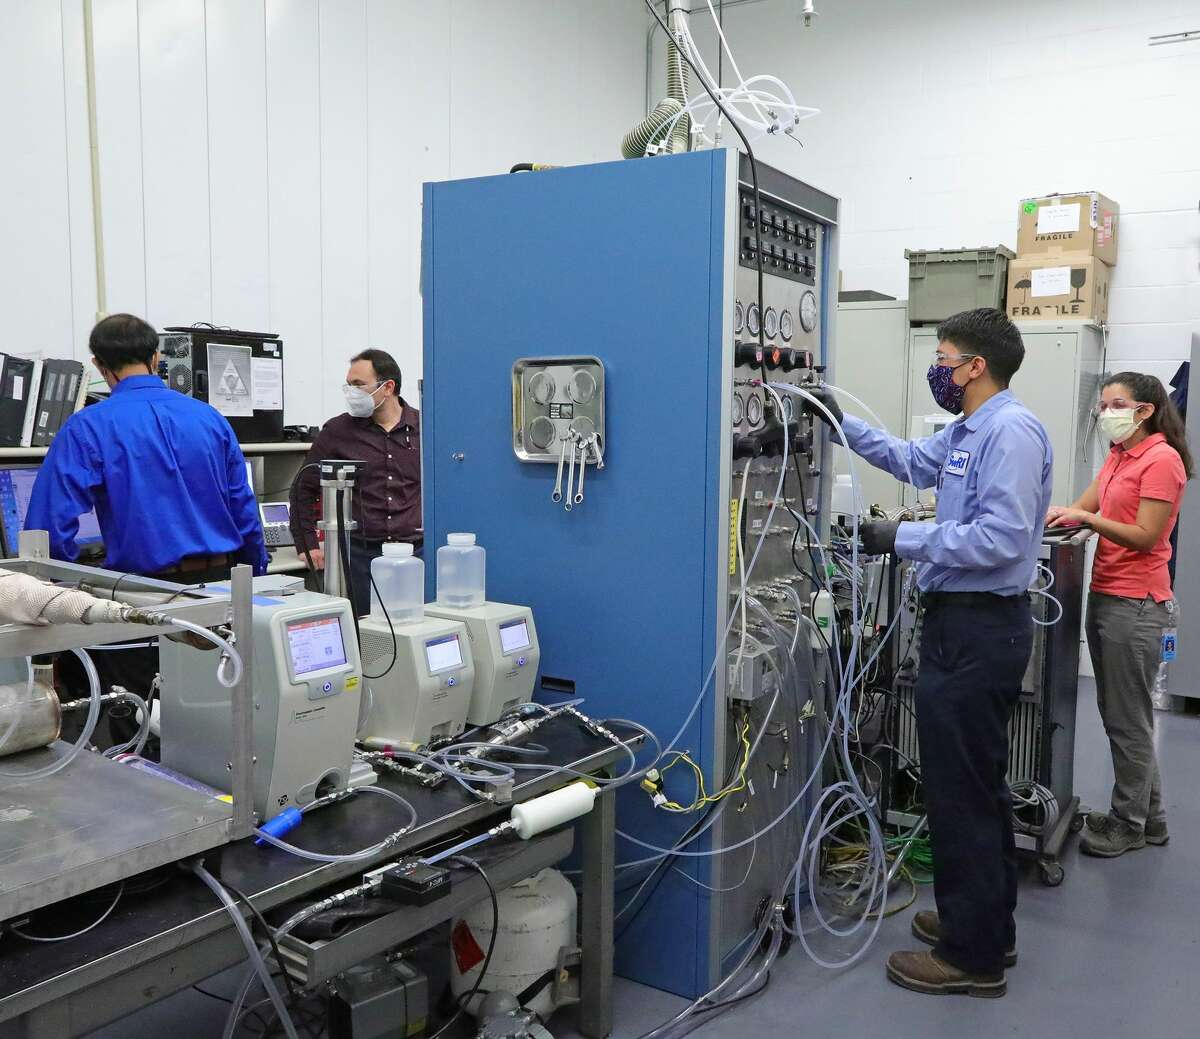 Southwest Research Institute announced Tuesday that its Particle Science and Technology Laboratory is now testing face masks to check for counterfeit or underperforming masks.